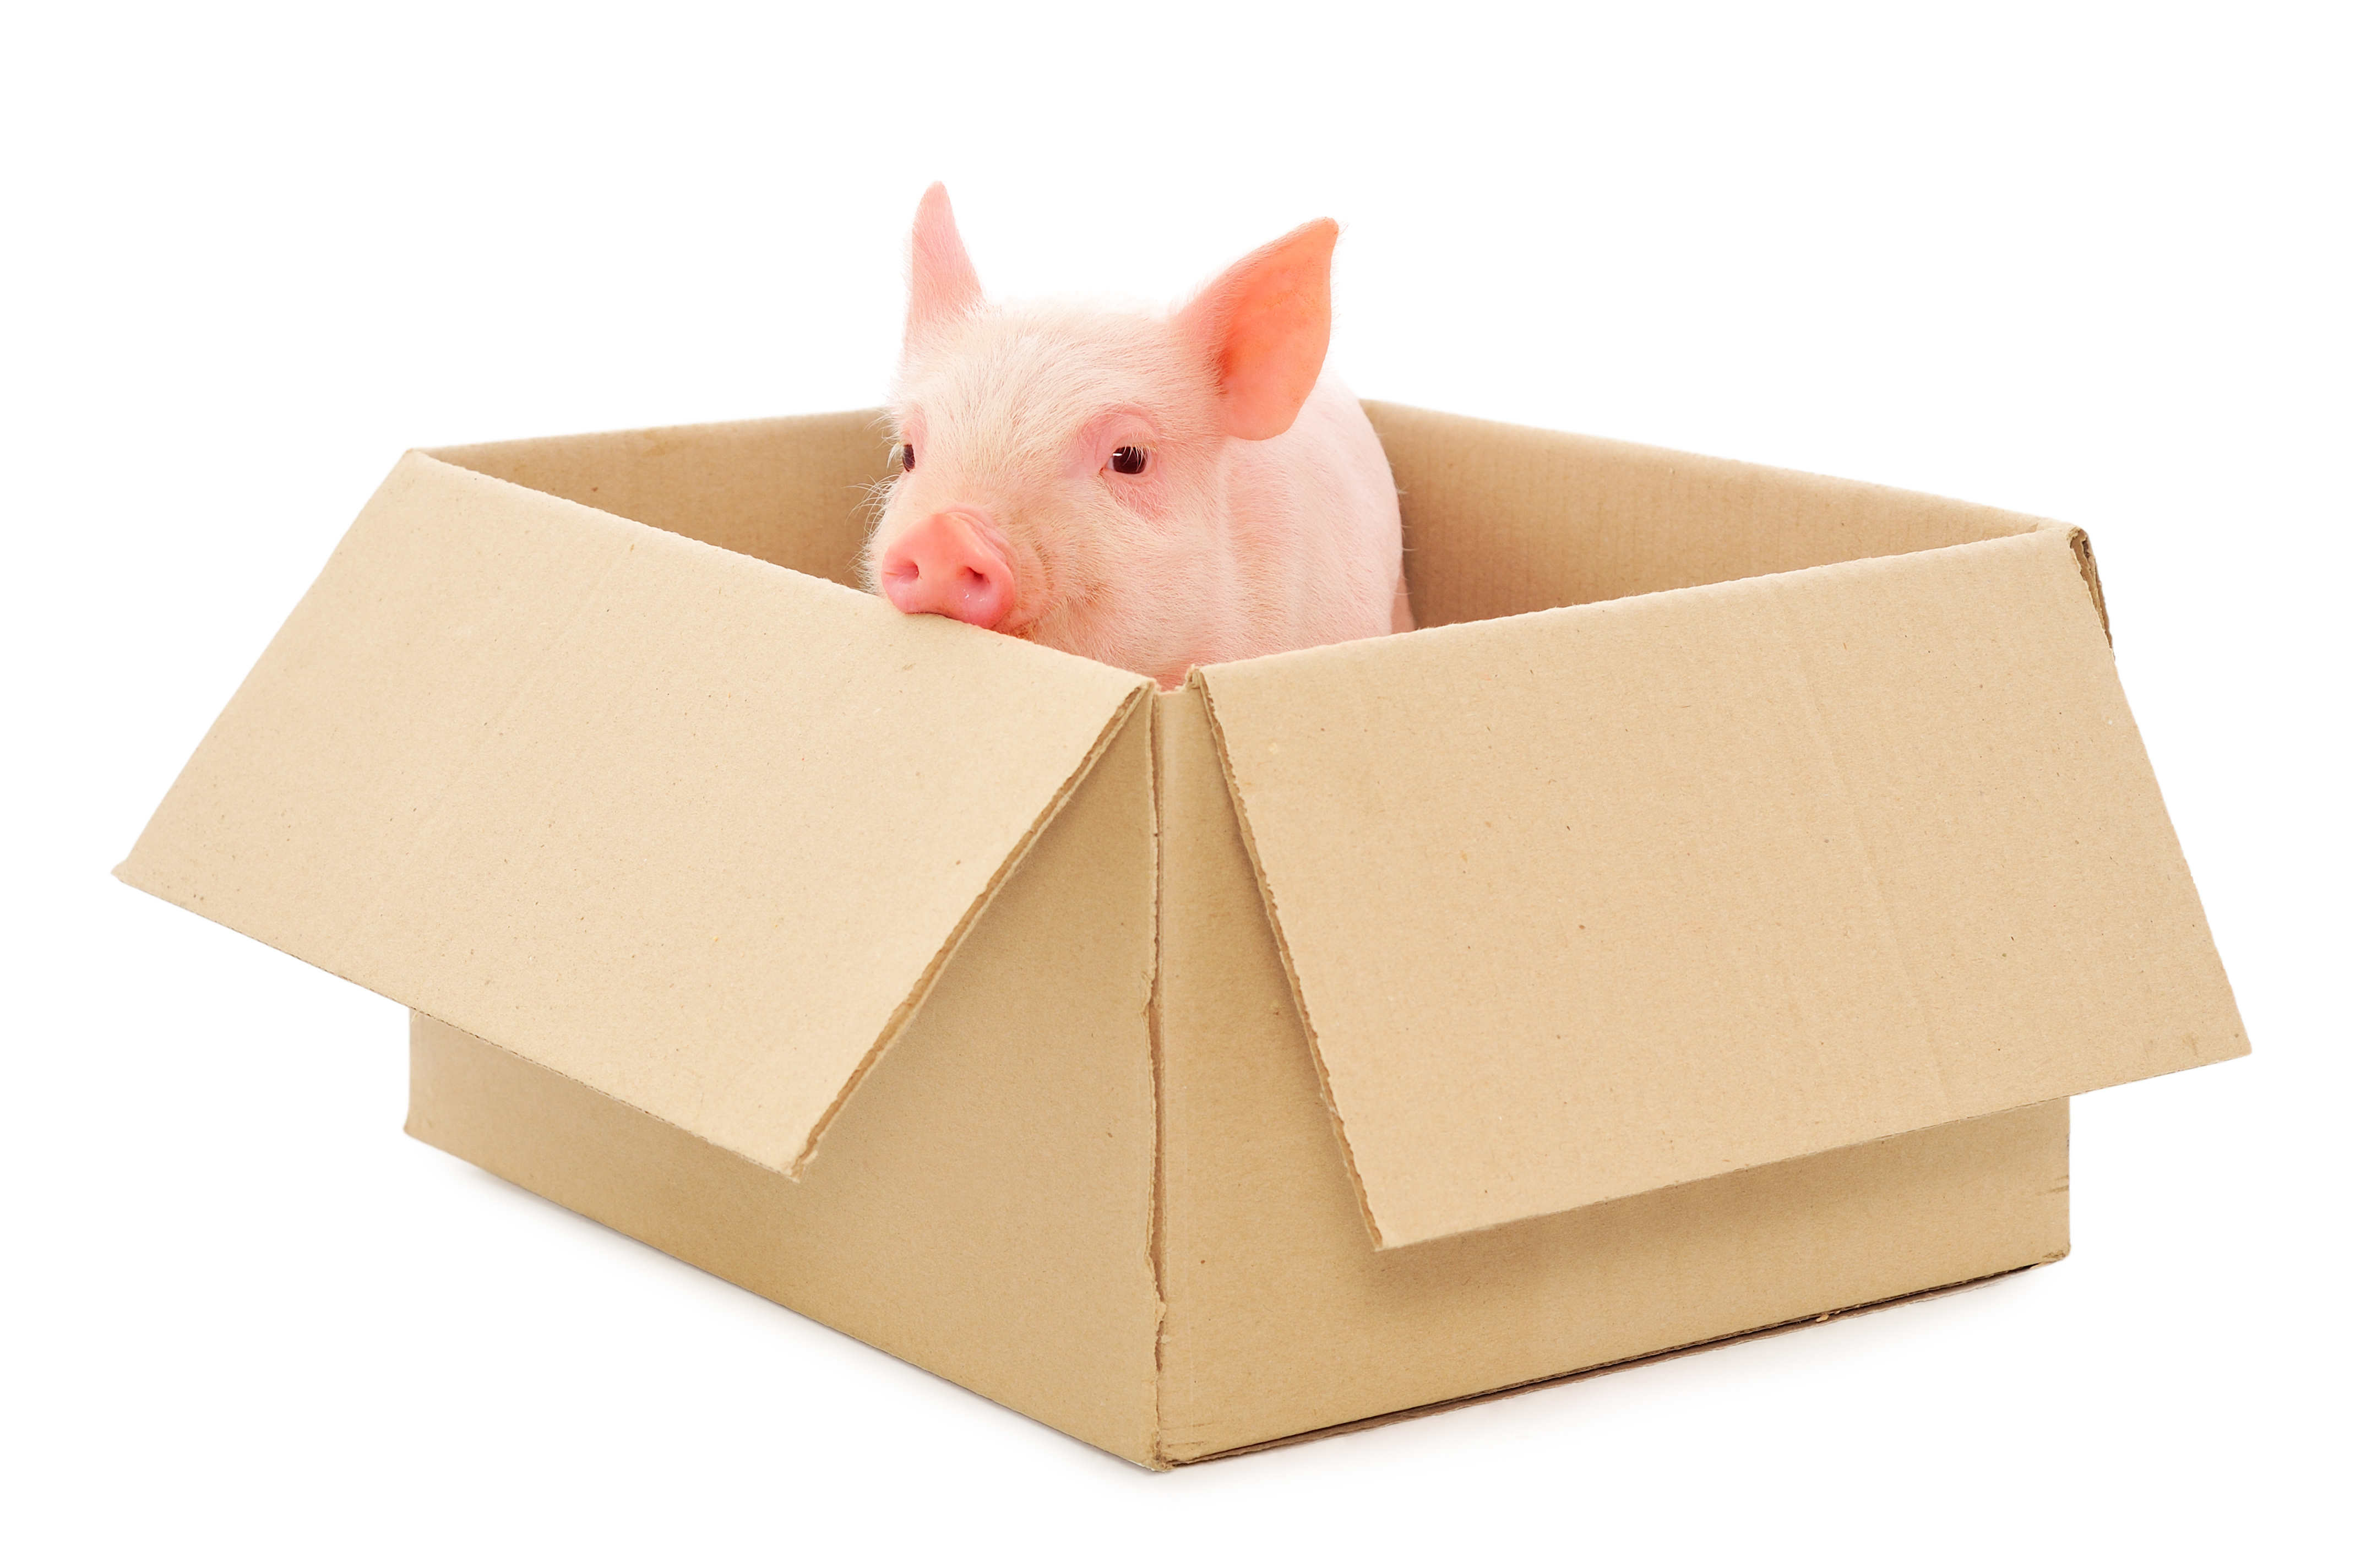 Pig in Box